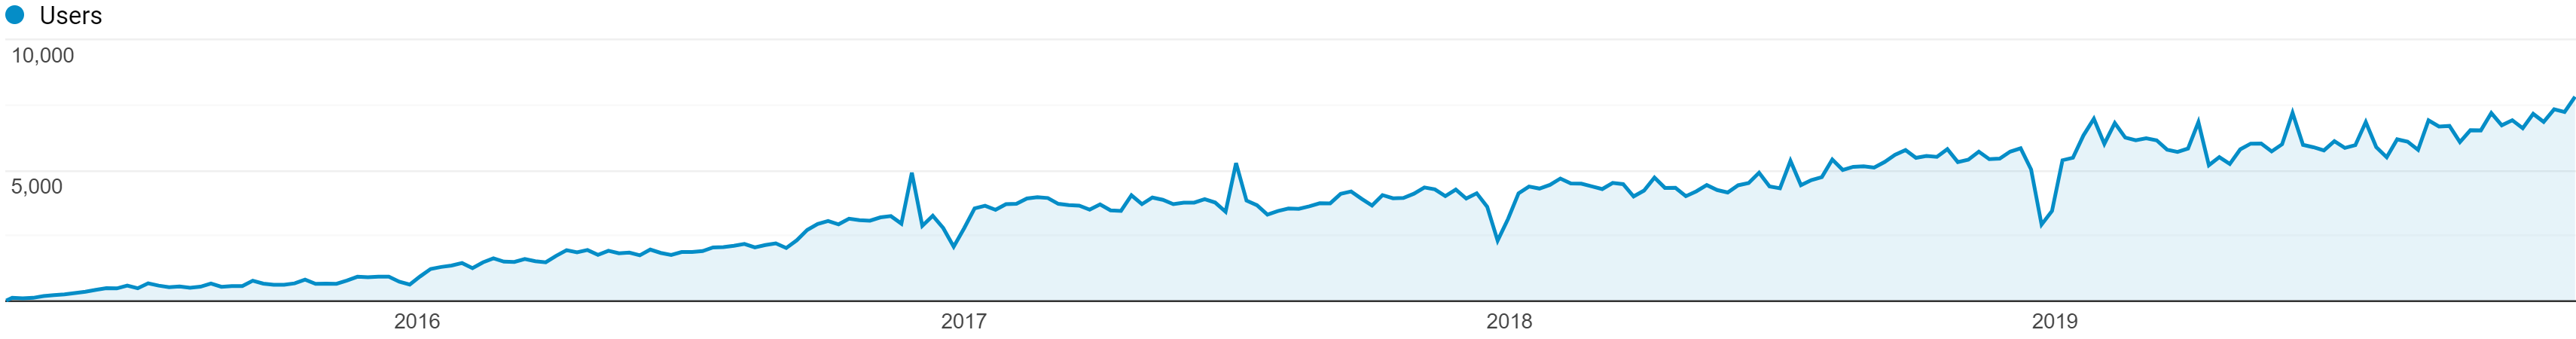 2019 Website Analytics